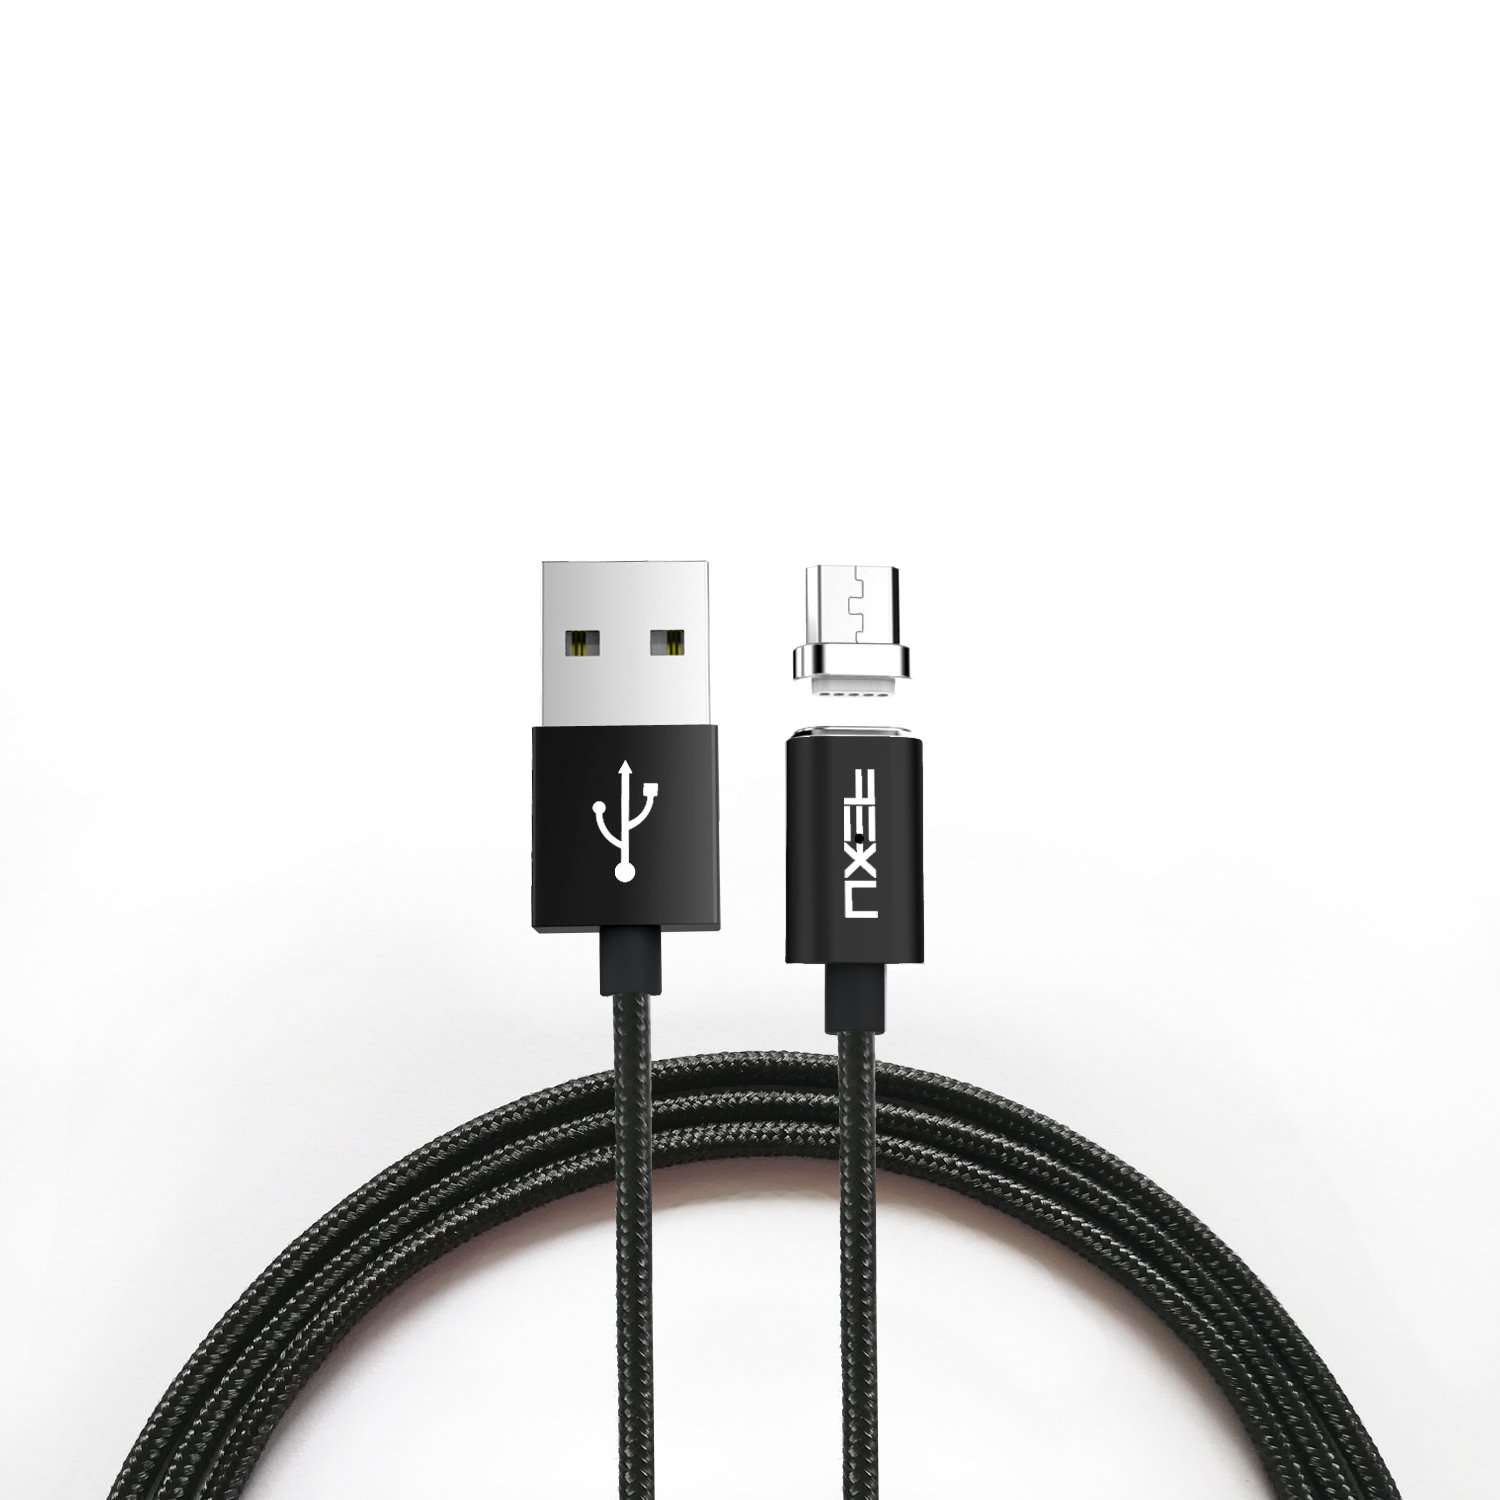 Magnetic USB Cable, iKNOWTECH Reversible Data Sync & High Speed Charger Cable Adapter with LED Indicator Light for Android, HTC, Samsung, Sony phones & Tablets (1.2 M Black Magnetic Micro USB Cable)